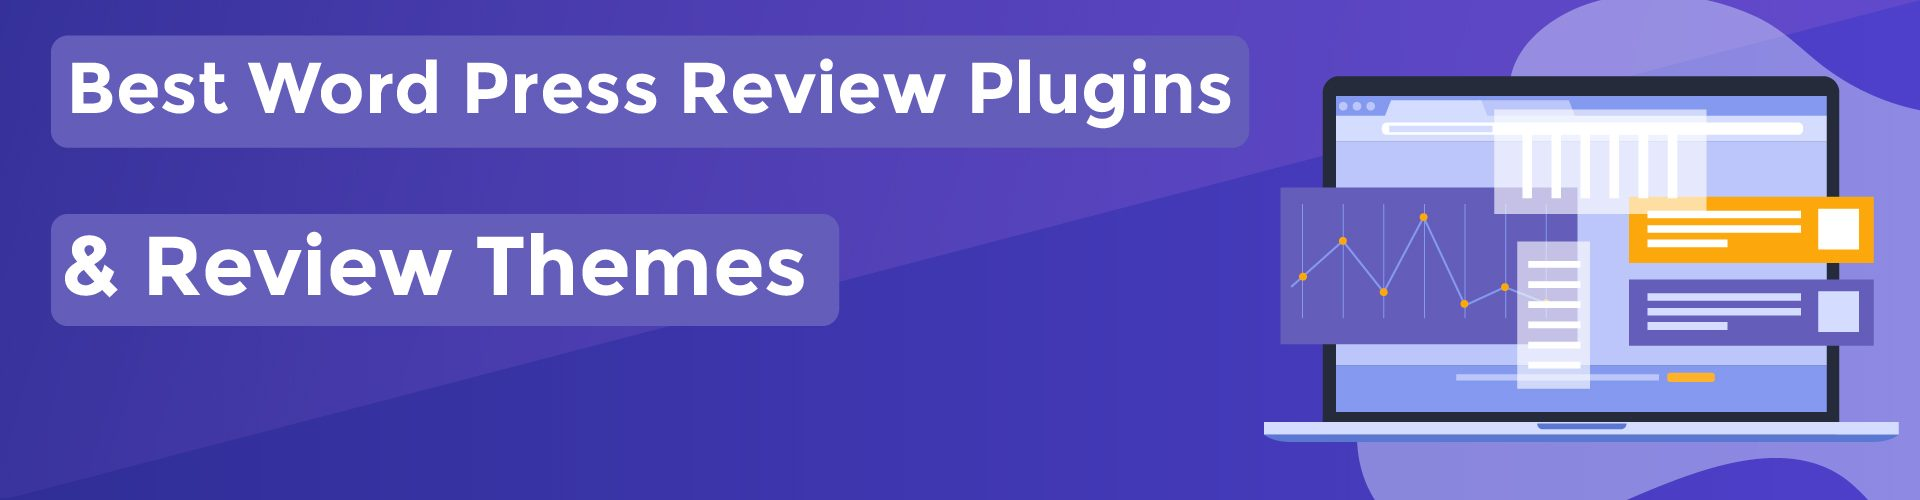 Best WordPress Review Plugins & Review Themes